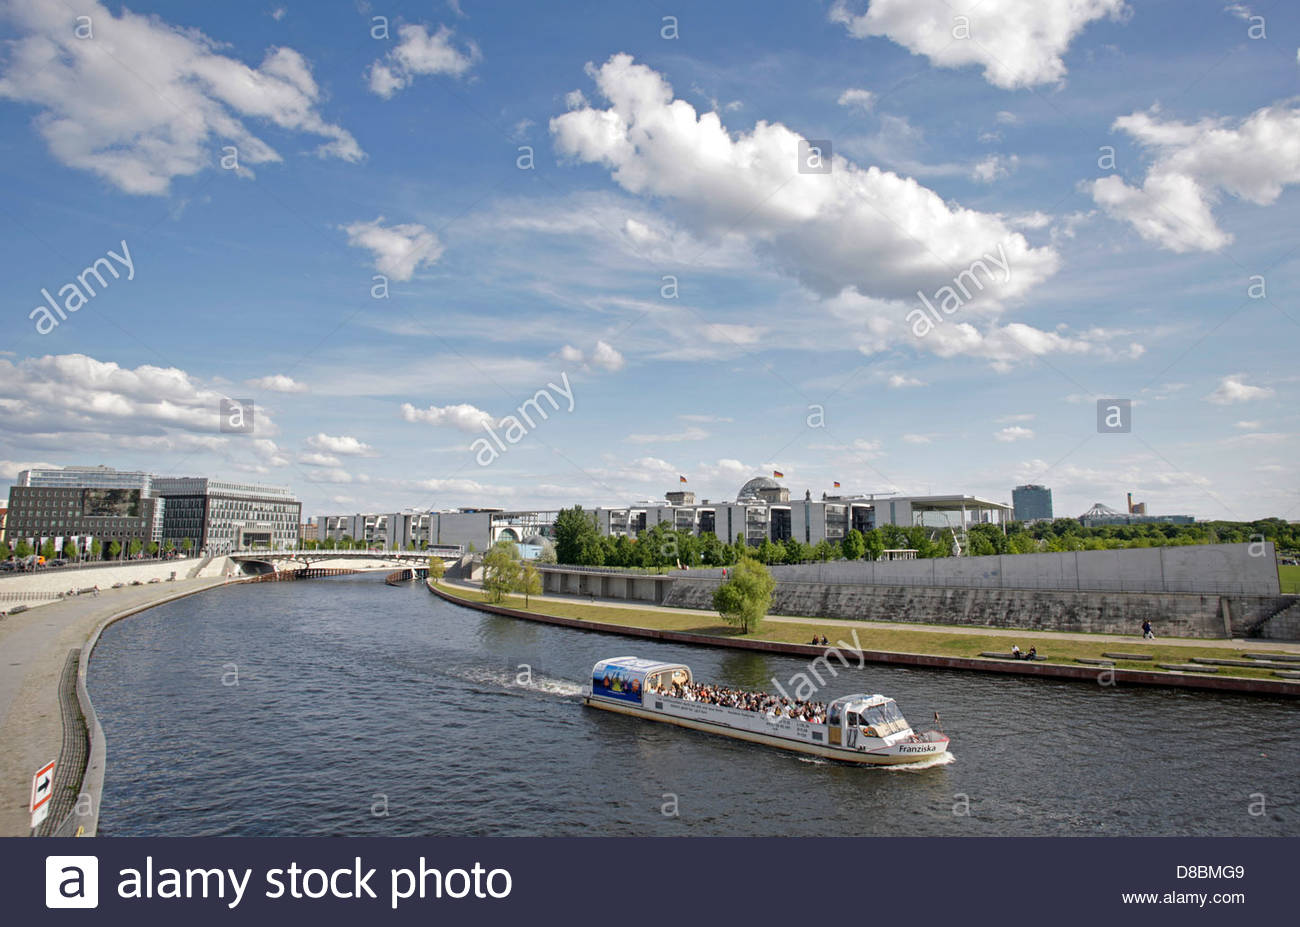 High angle view of a passenger ship moving in a river, Spree, Berlin, Germany - Stock Image